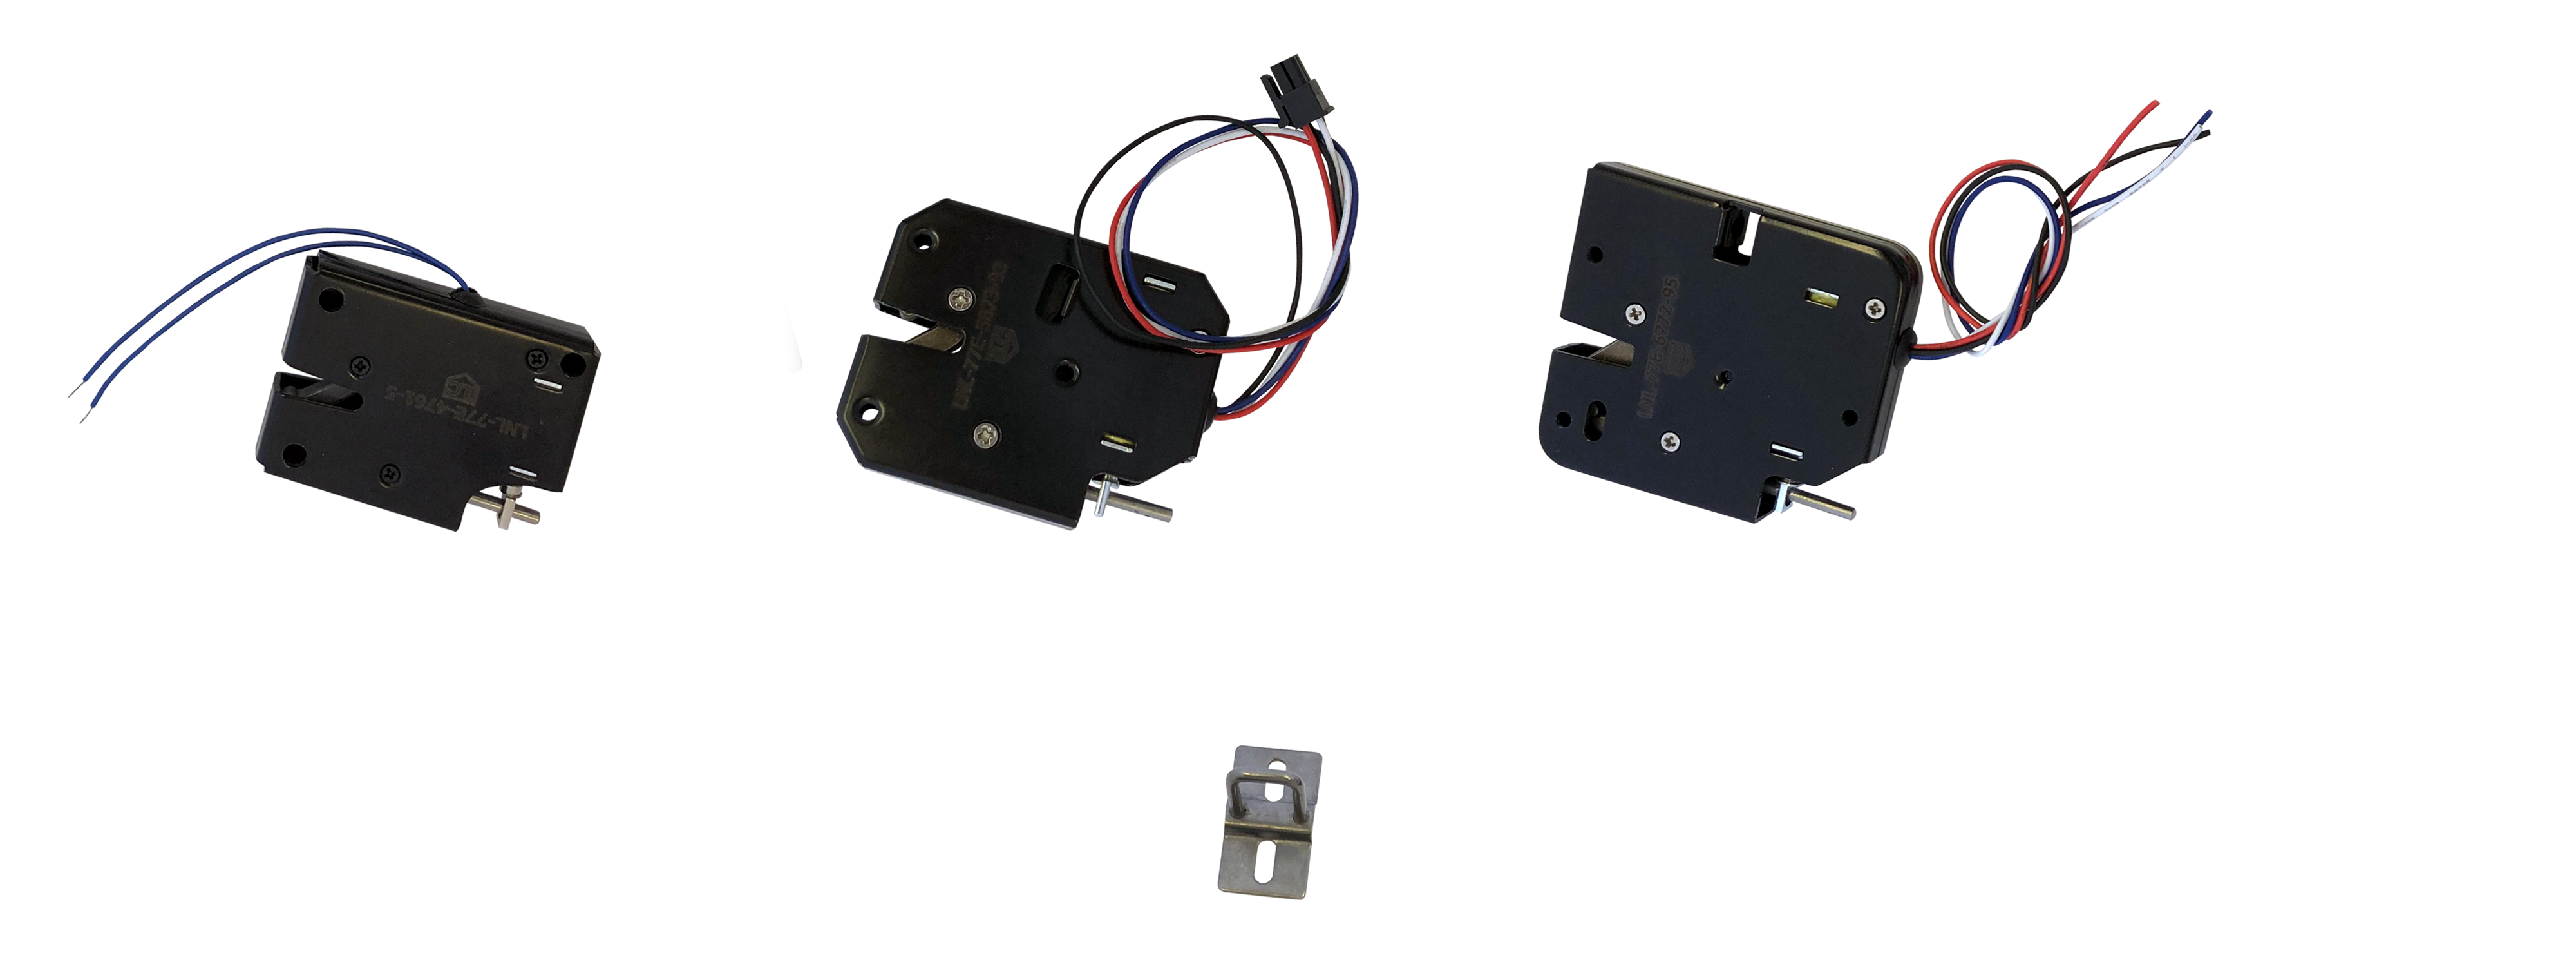 Electronic Rotary Latch System Large - LNL-77E-6772-93